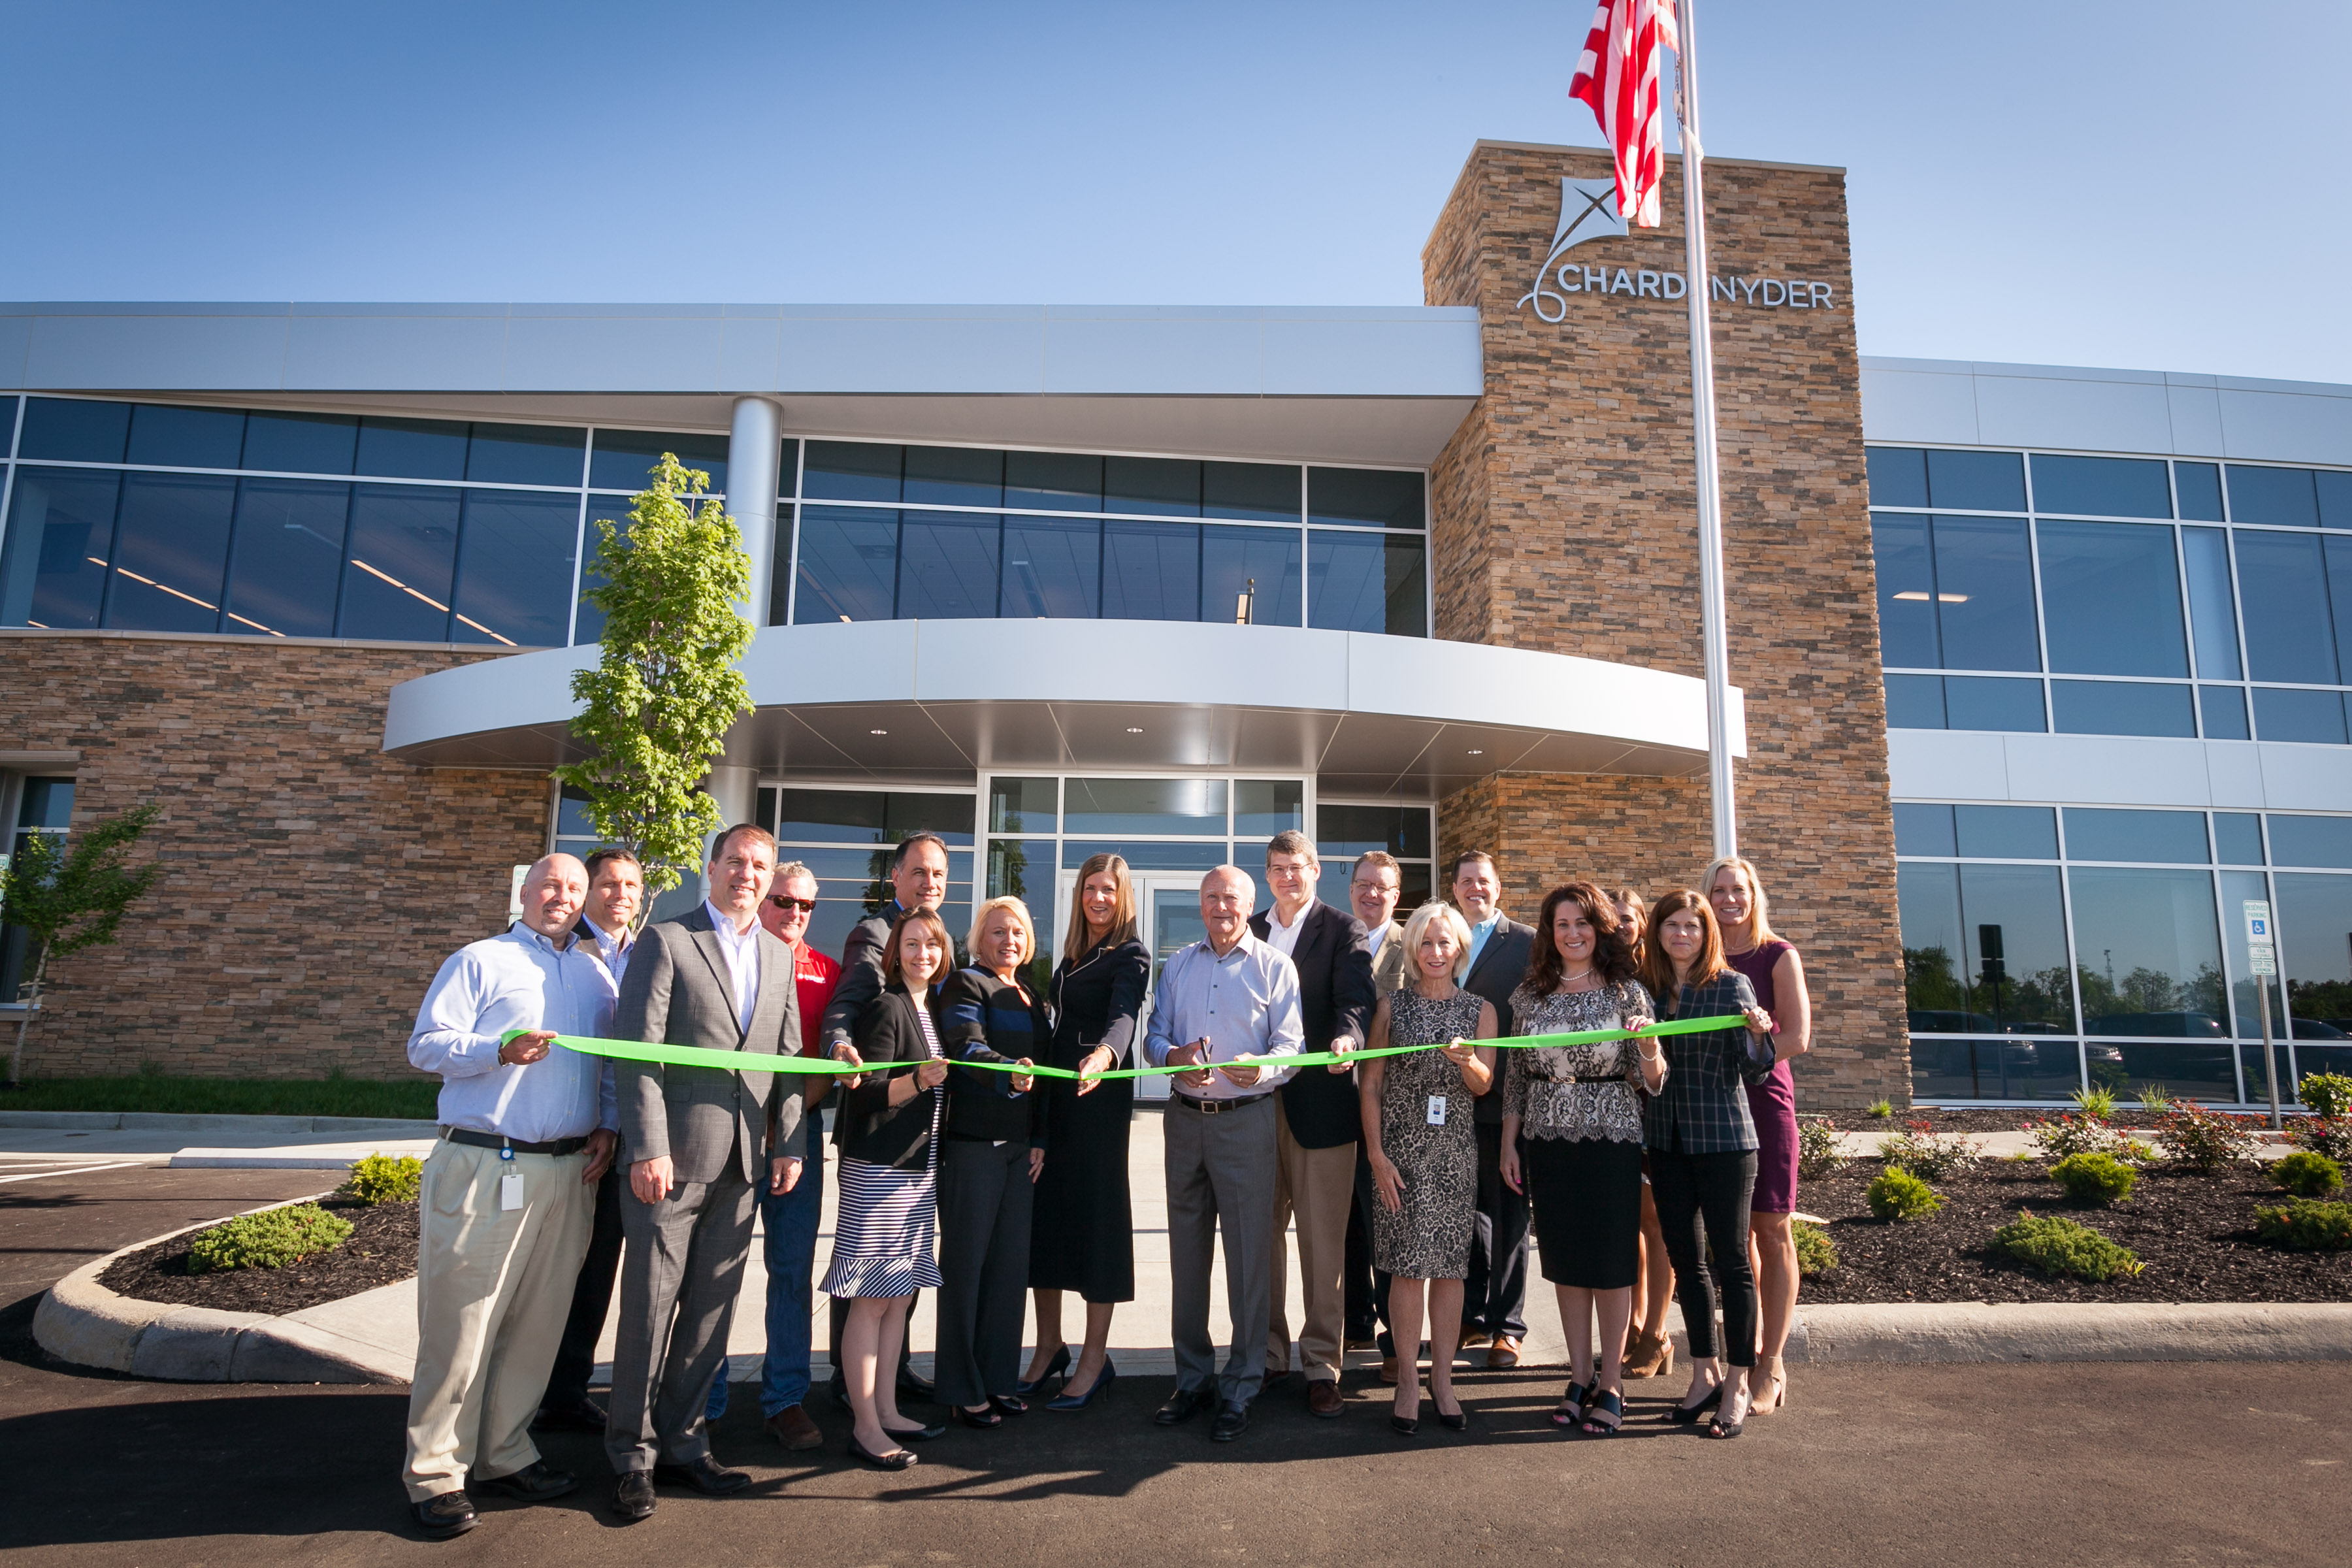 Chard Snyder and City of Mason Celebrate Official Opening of